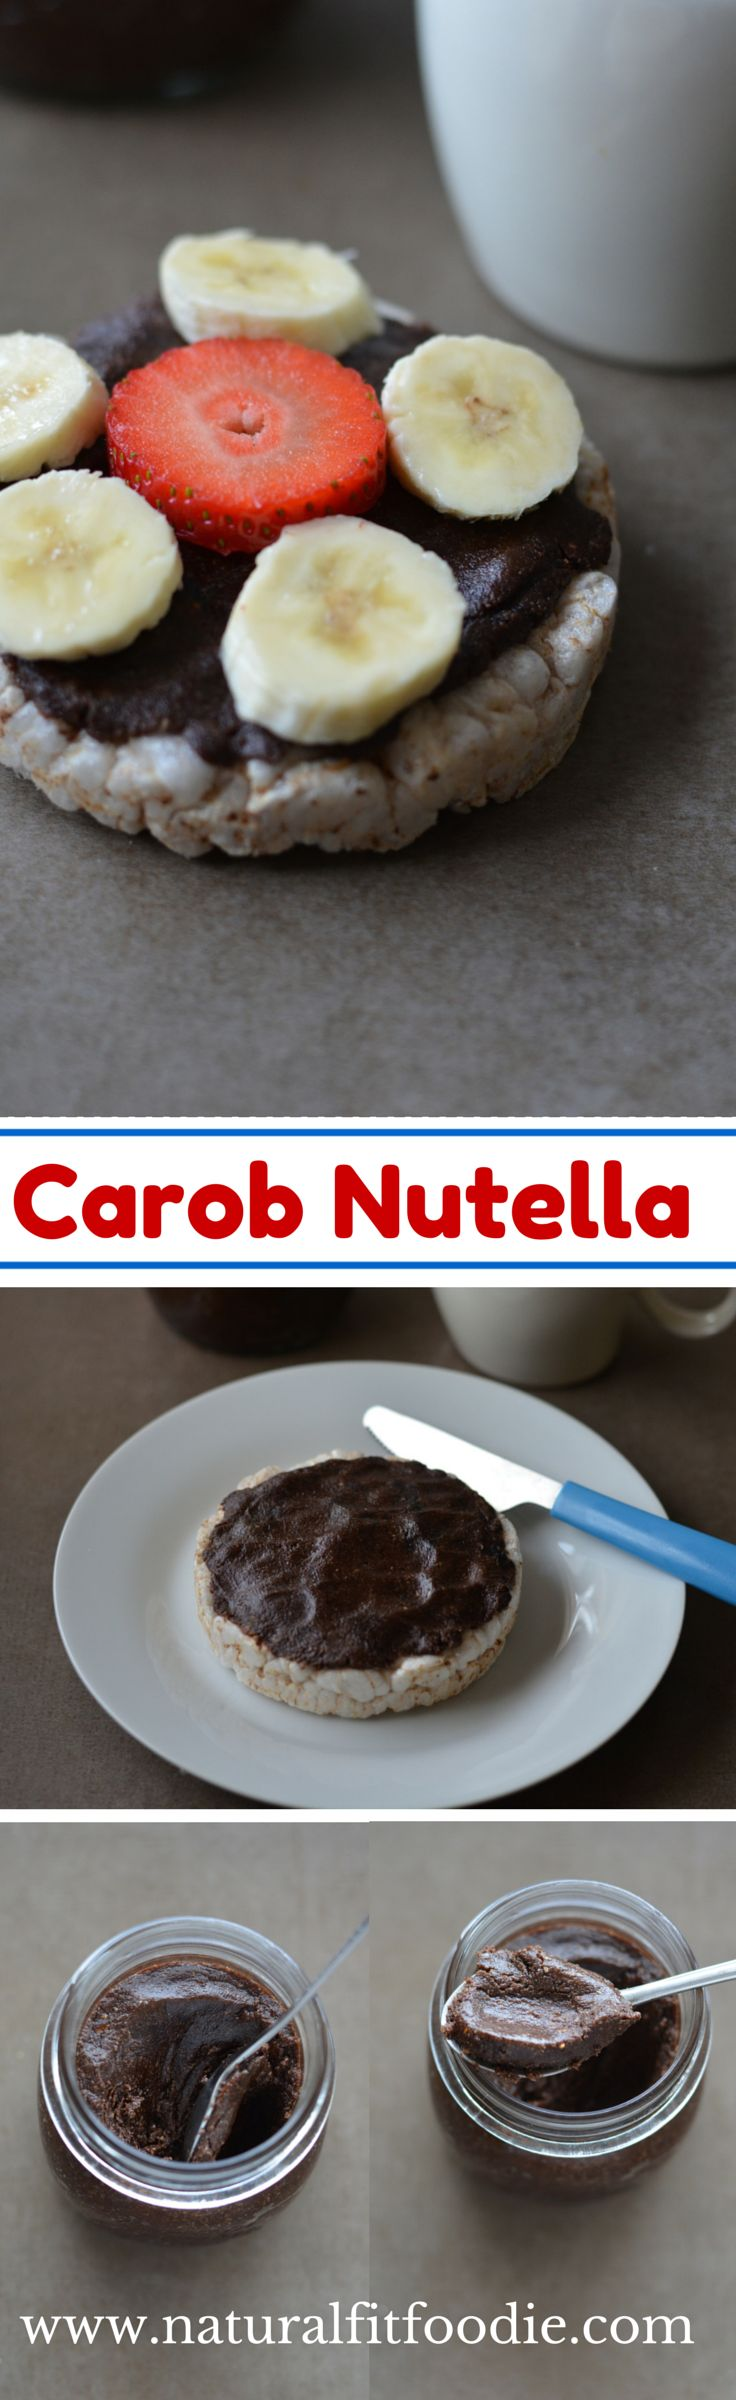 Carob Nutella is a delicious and decadent hazelnut spread. A healthy spin on the traditional Nutella. It's Vegan, Paleo, dairy free and refined sugar-free.